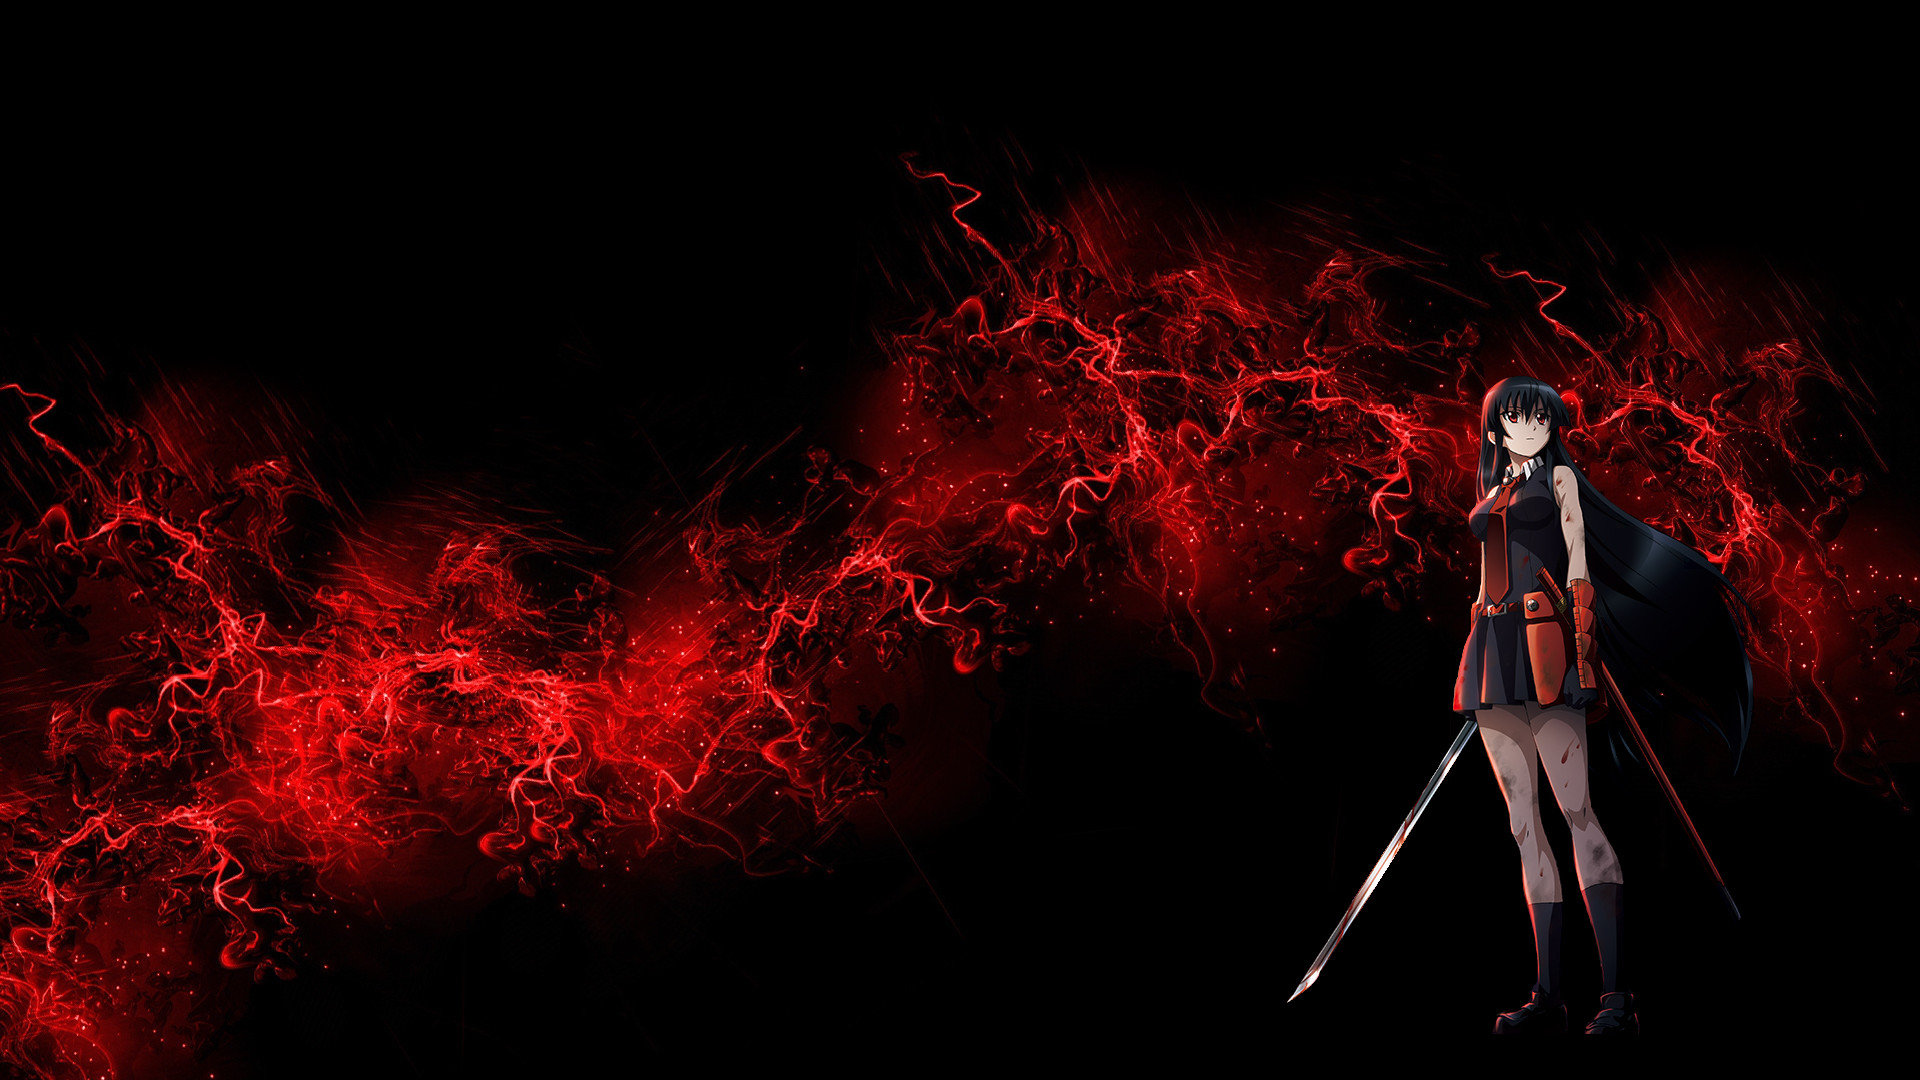 Download hd 1920x1080 Akame Ga Kill! desktop background ID:207955 for free